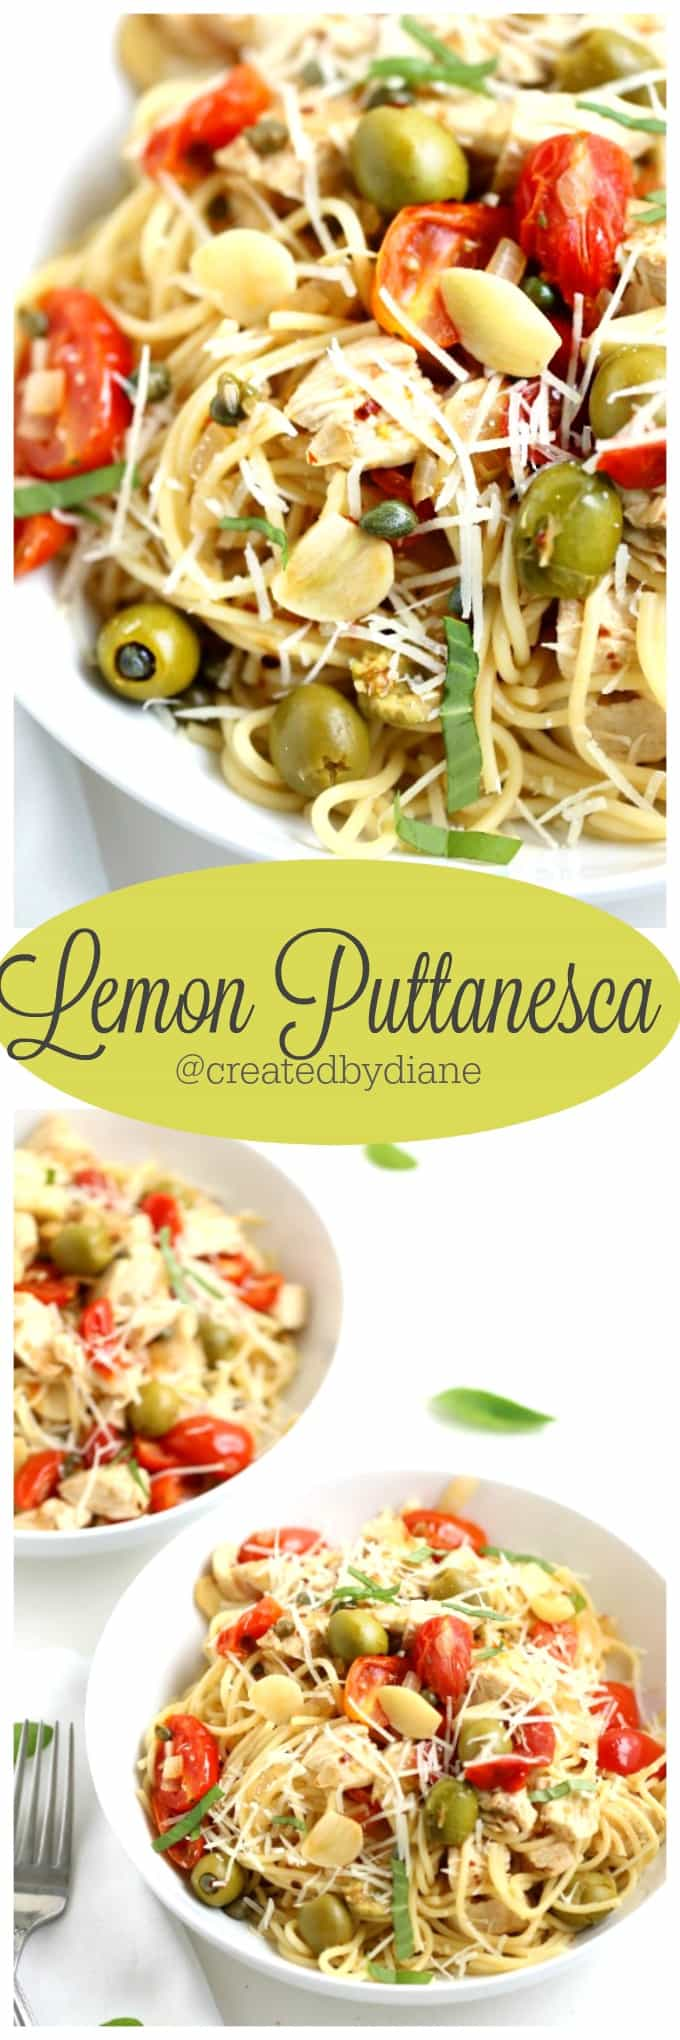 Lemon Puttanesca recipe from @createdbydiane